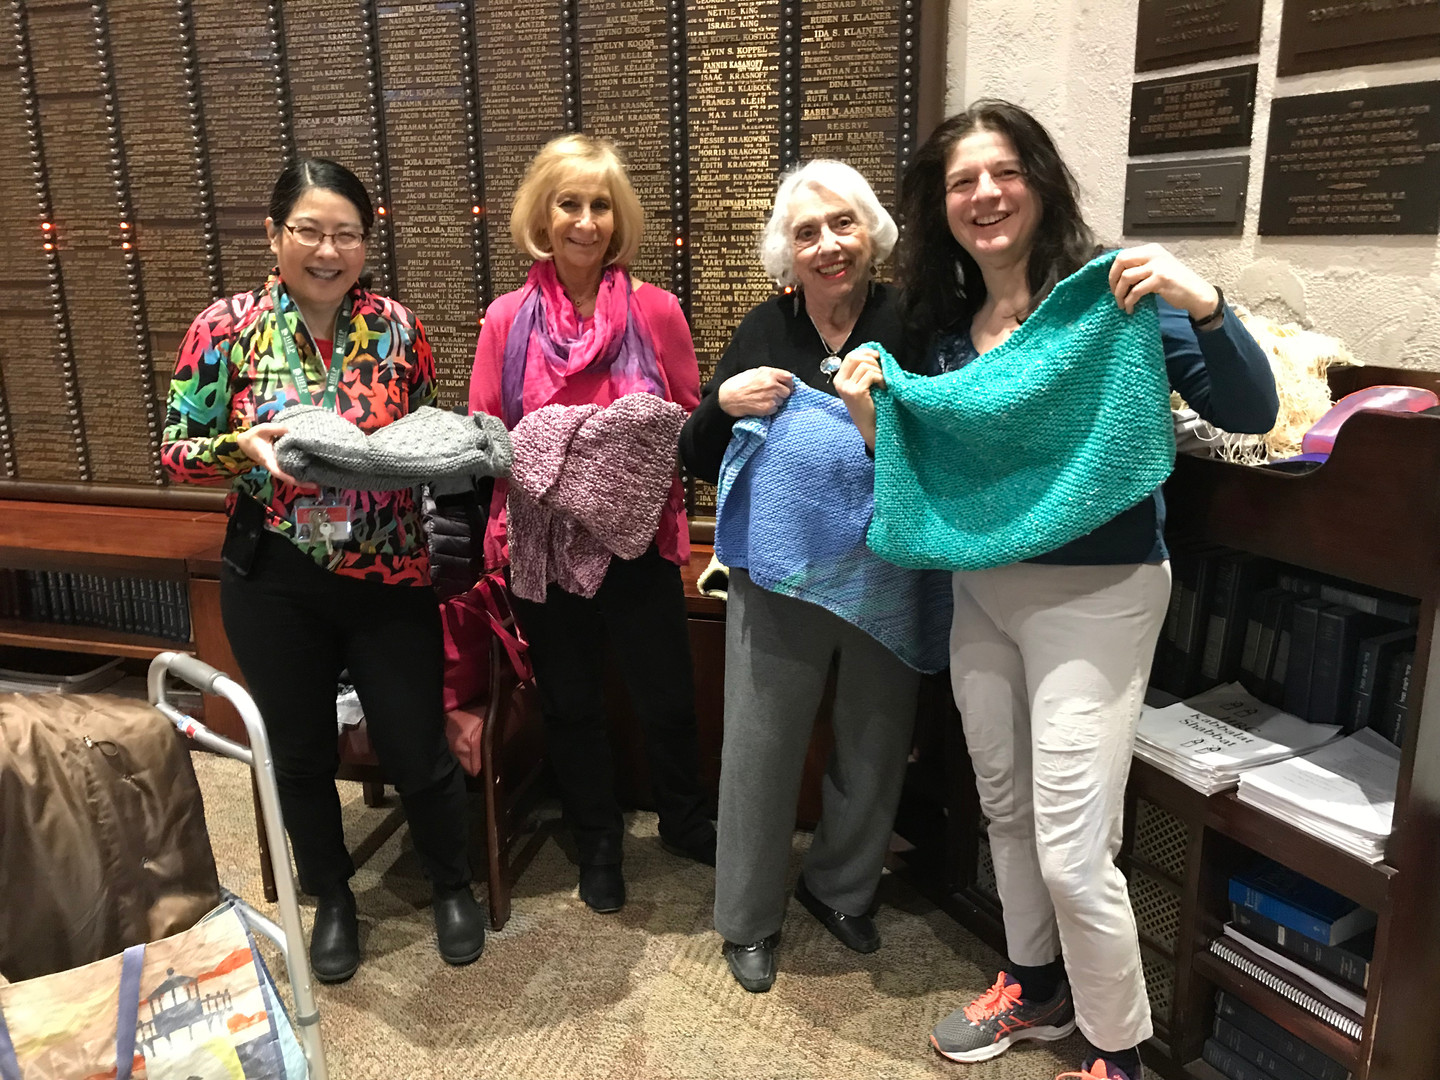 Knitting scarves for local organizations